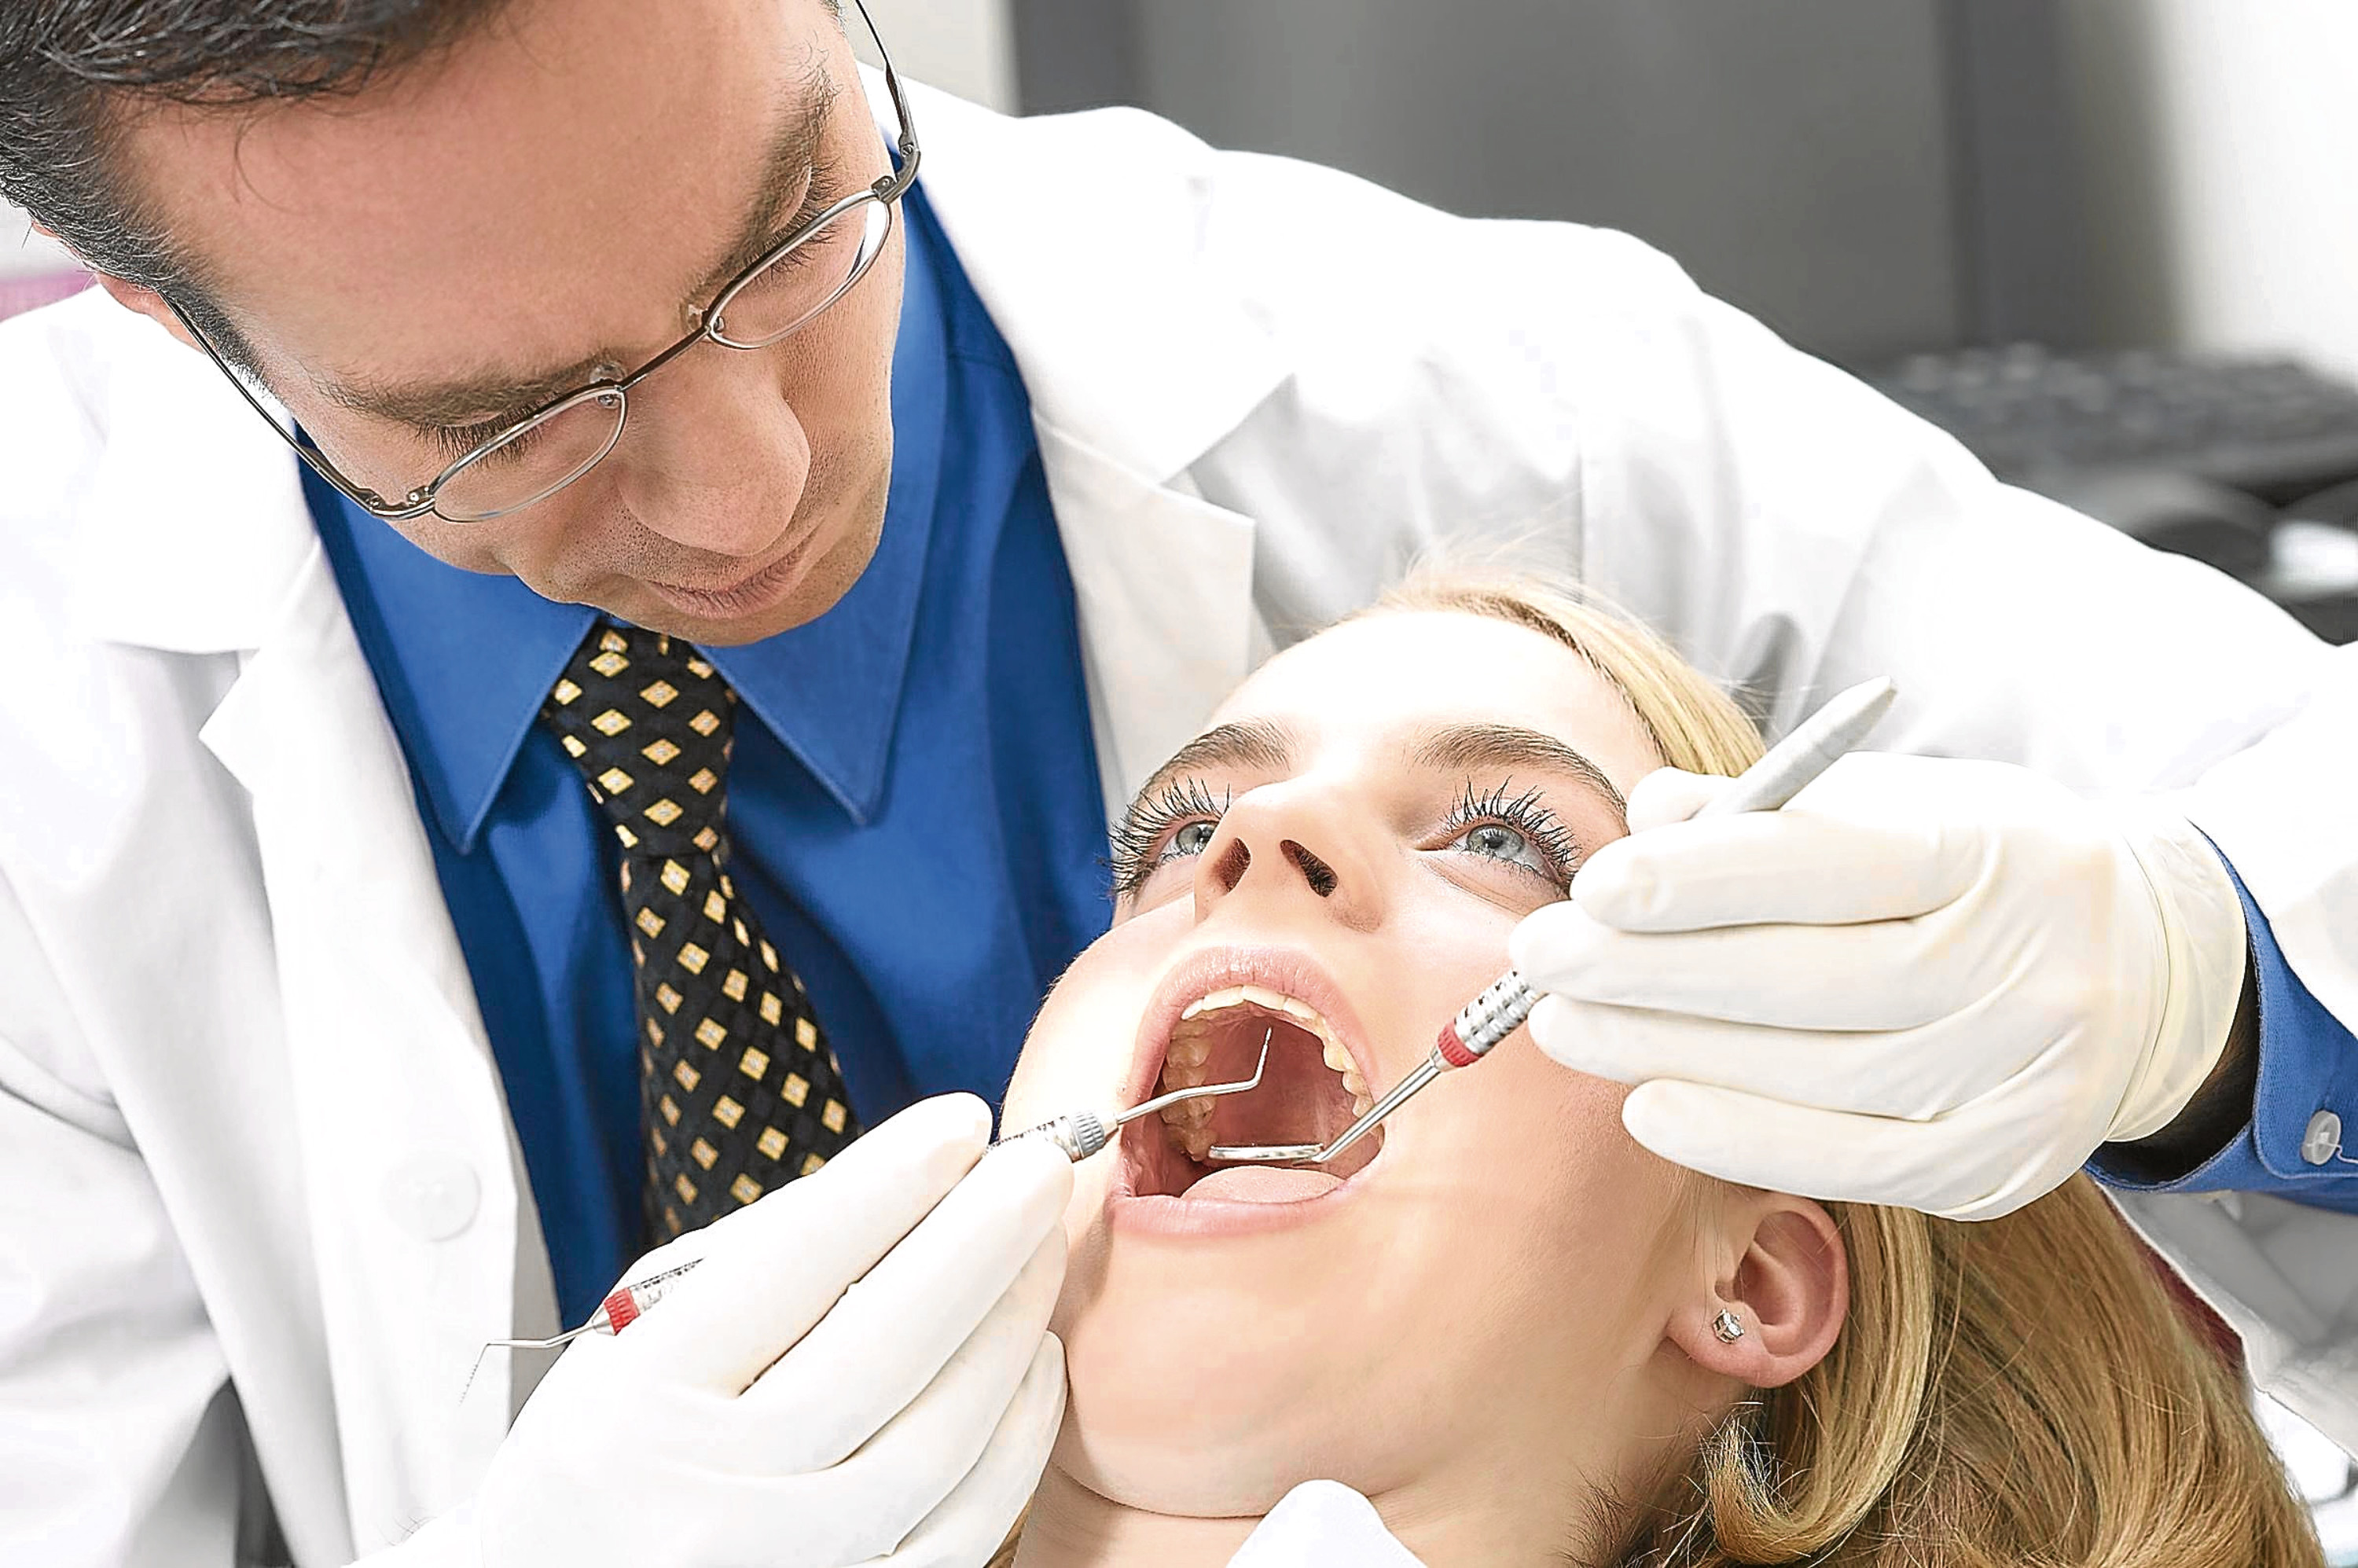 A Generic photo of a Dentist and patient.  See PA Feature HEALTH MOT. PA Photo/Generic